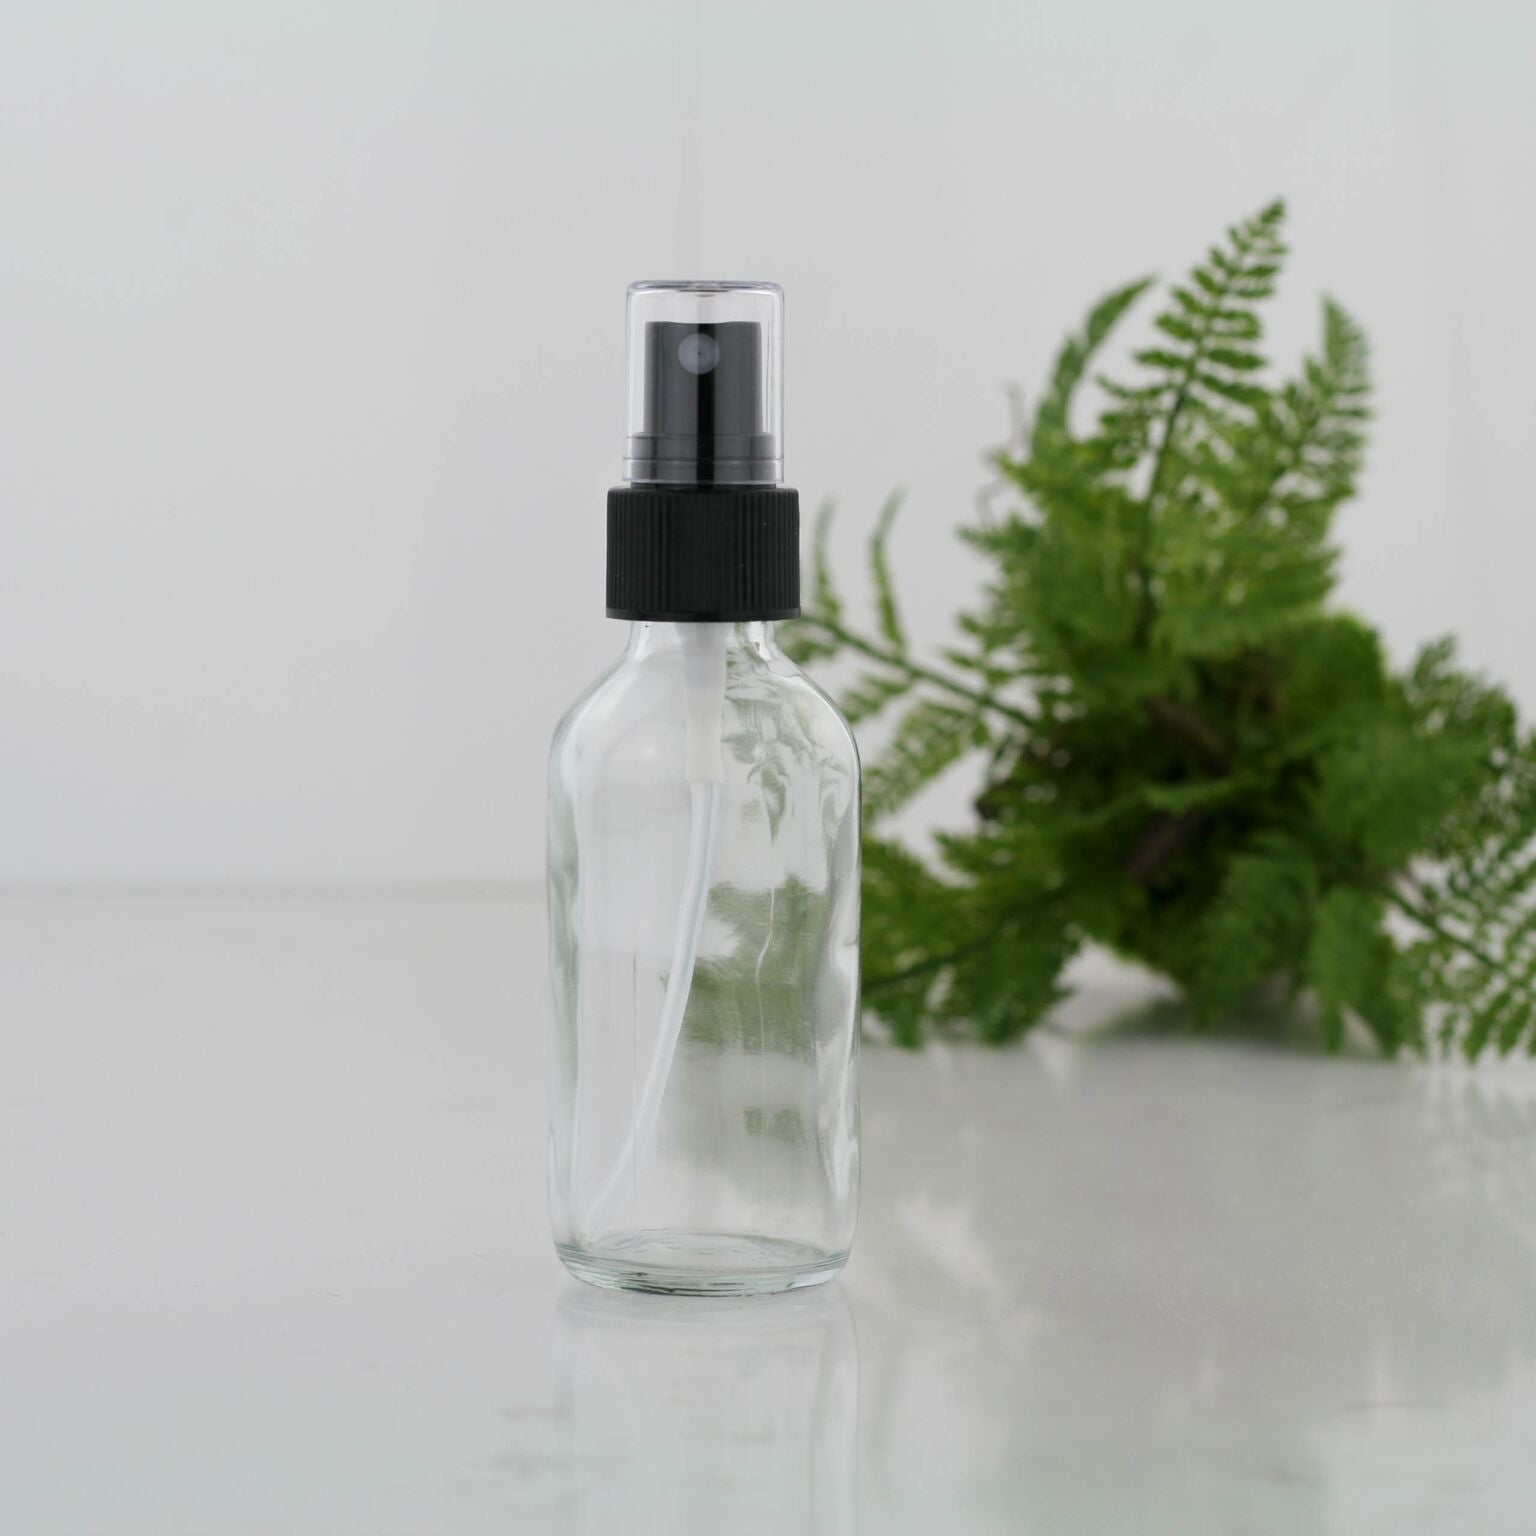 60ml Clear Glass Bottle with Fine Mist Spray Head